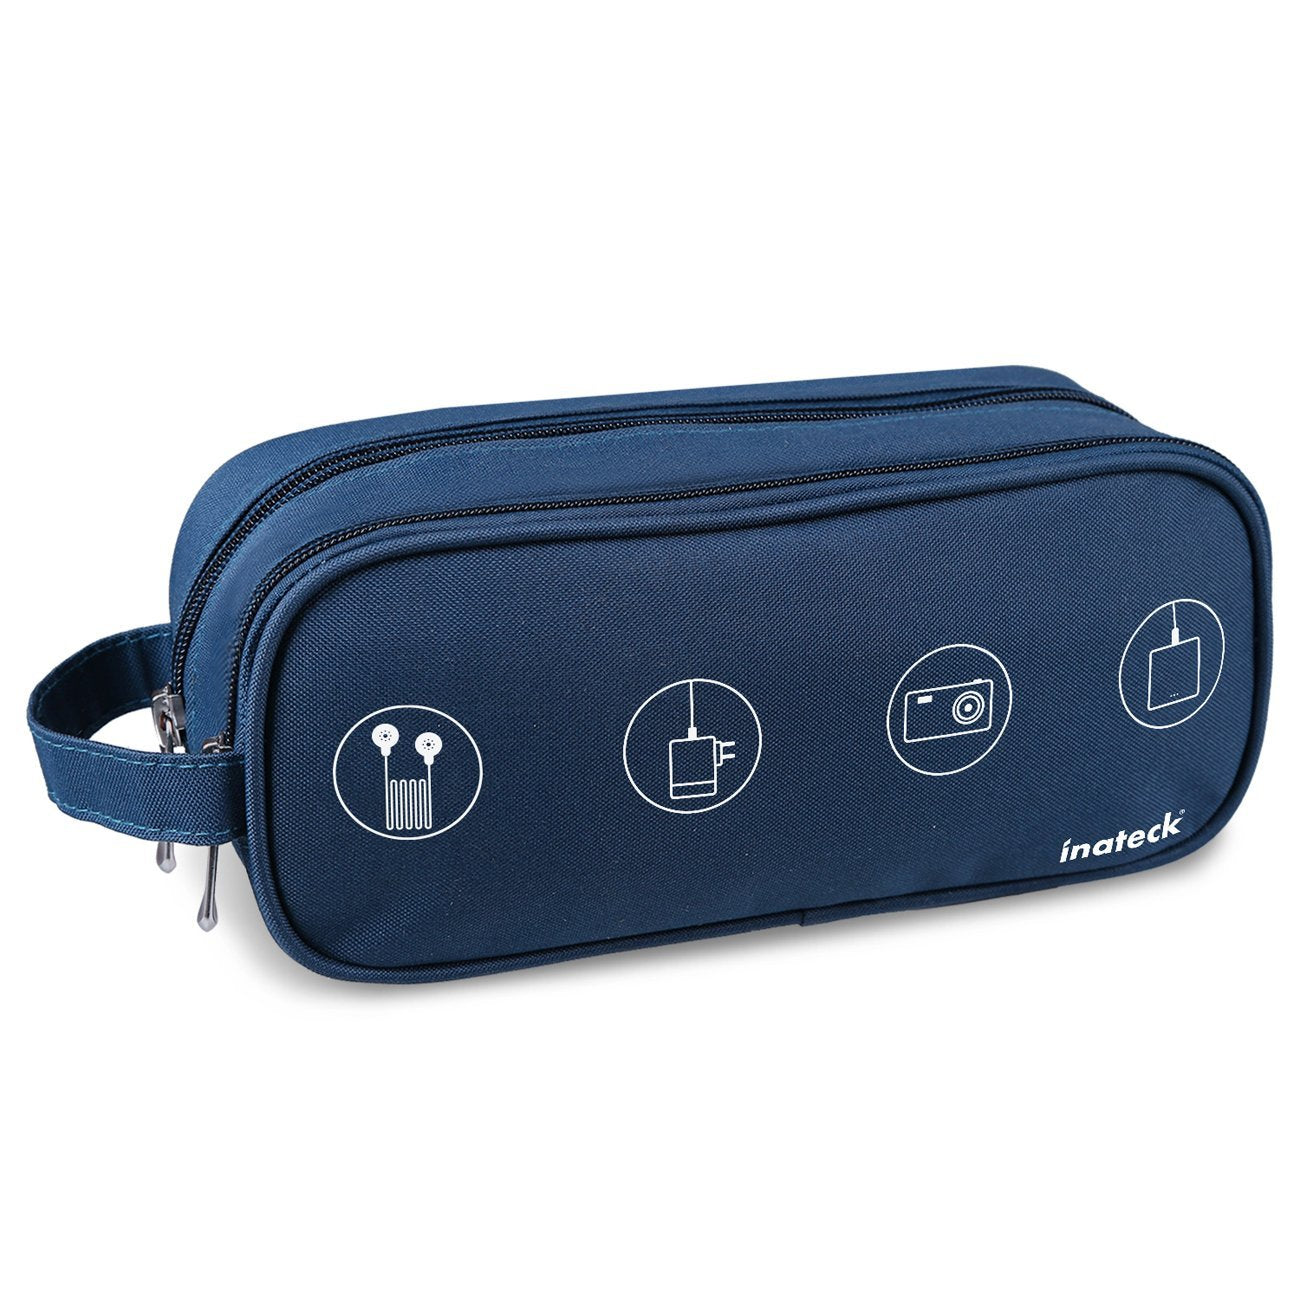 Inateck Portable Digital Storage Bag MP0605